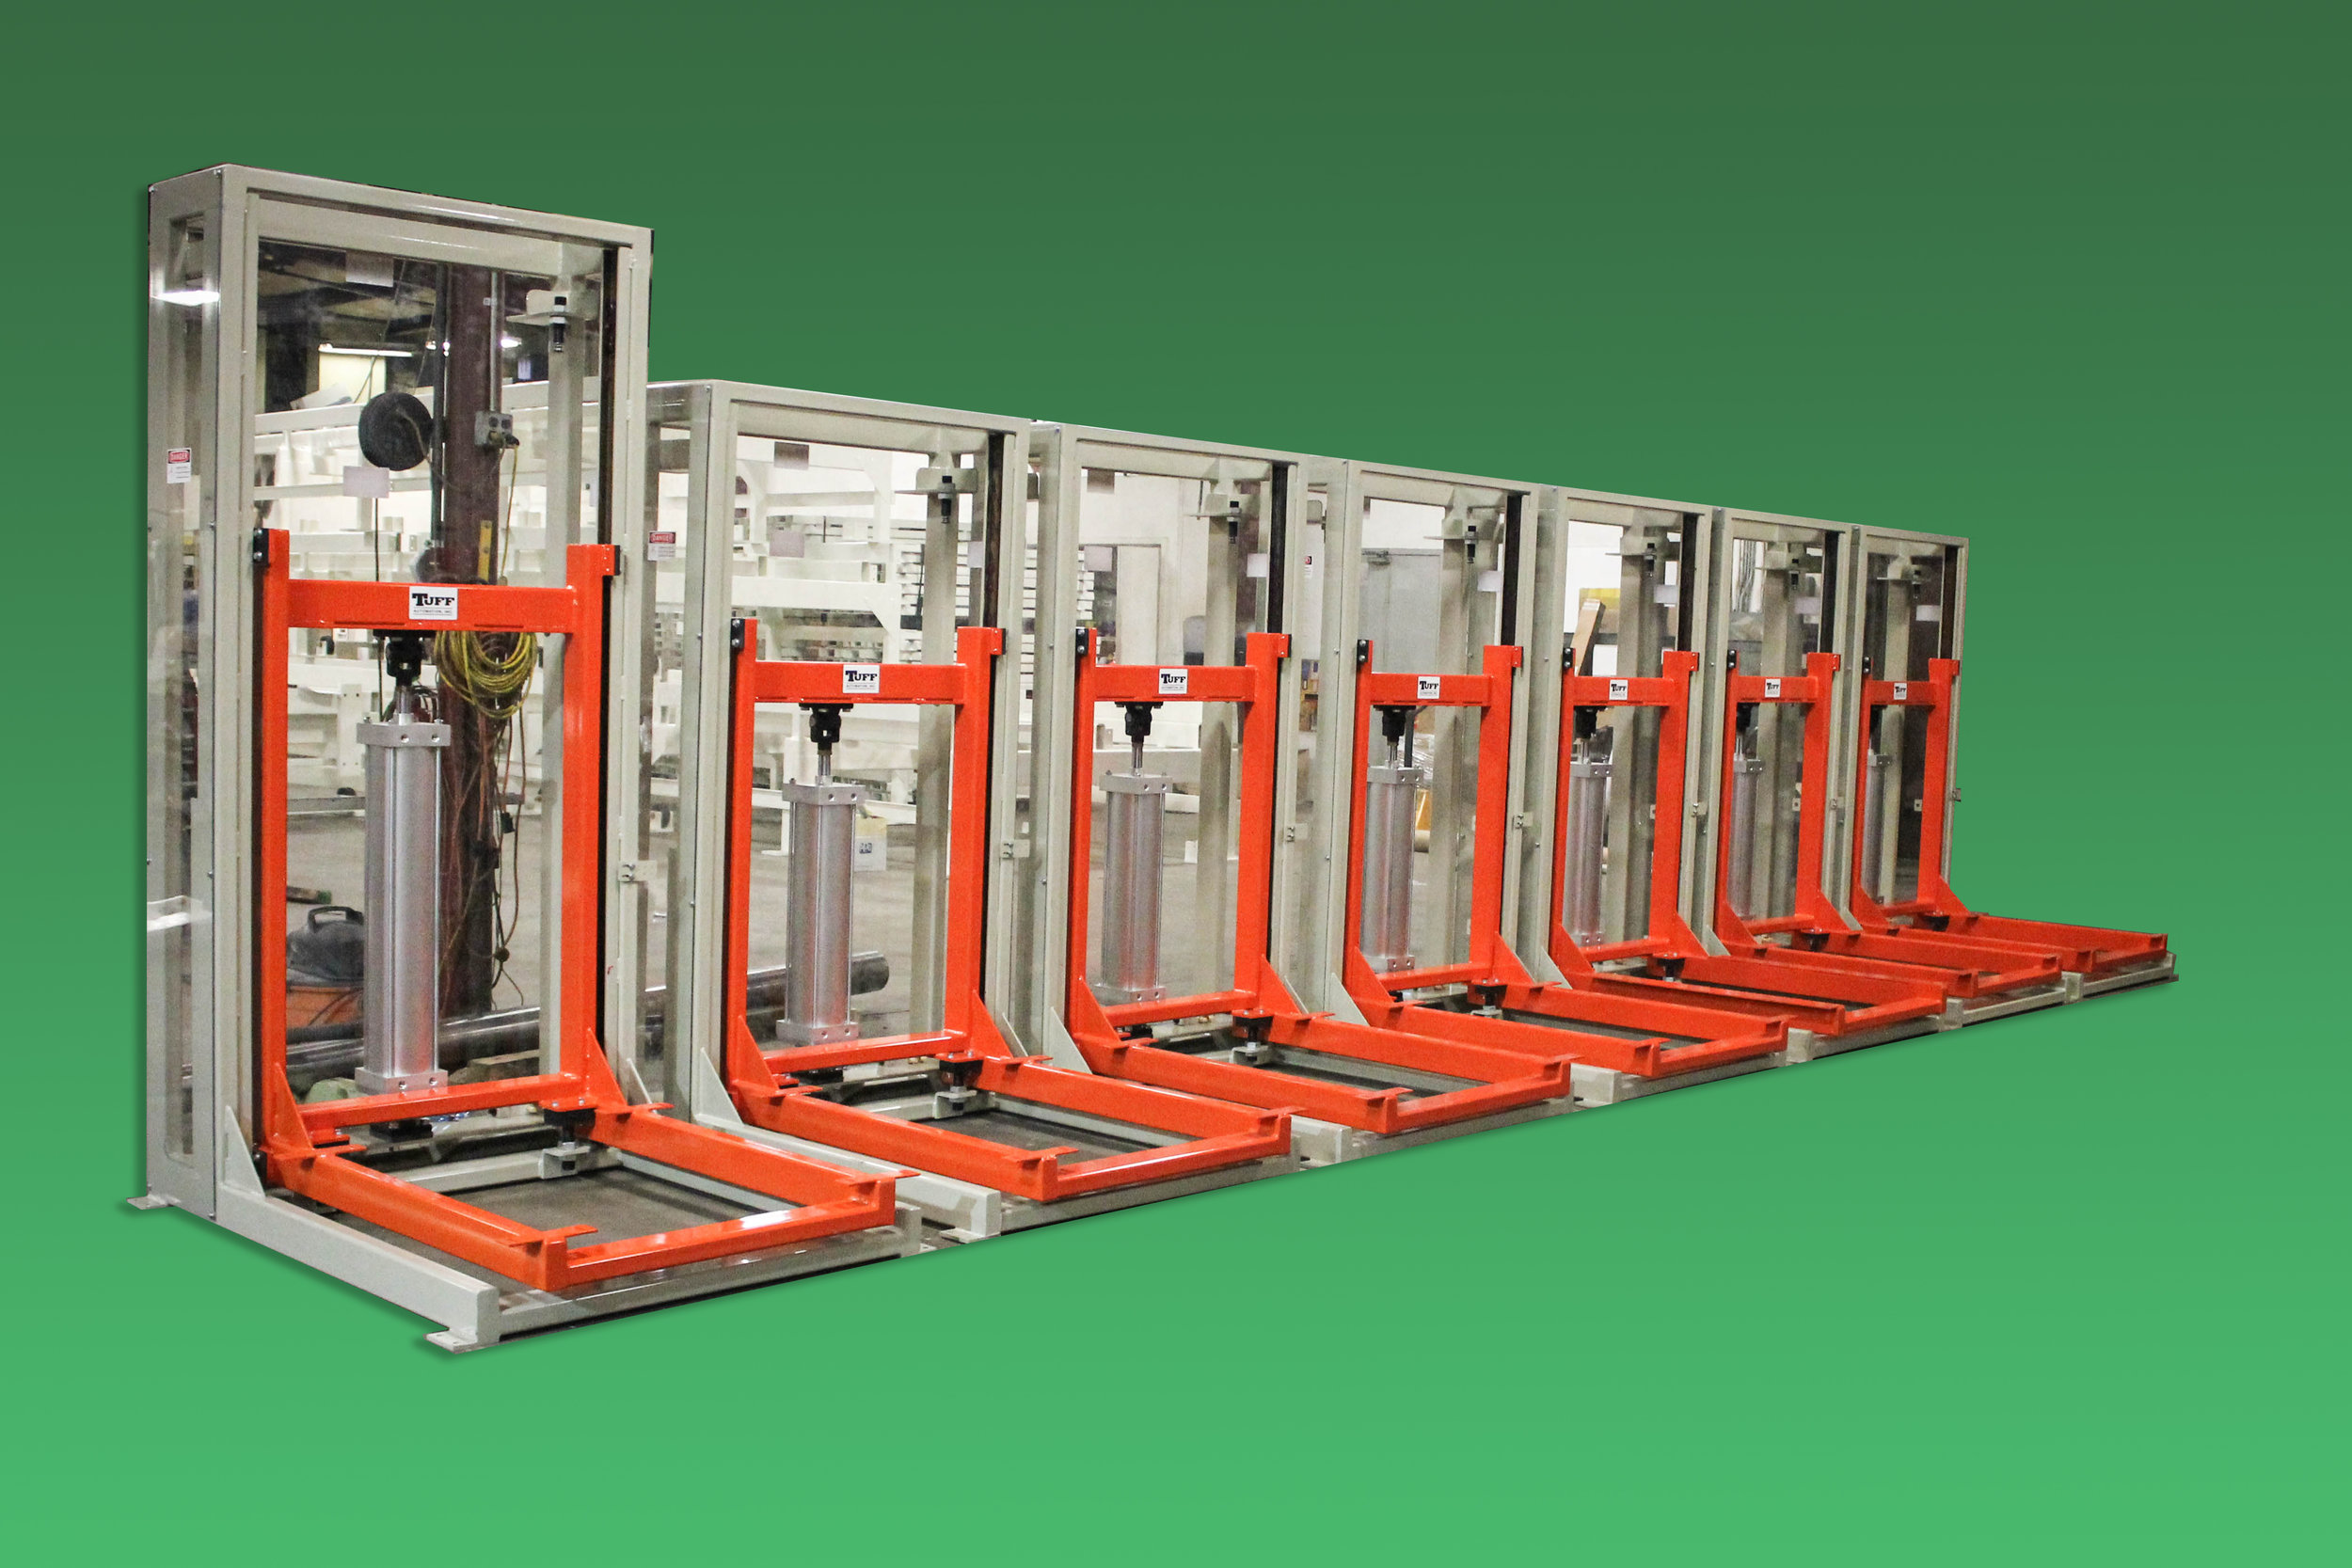 tuff automation pneumatic lifts scissor lift alternative custom design material handling